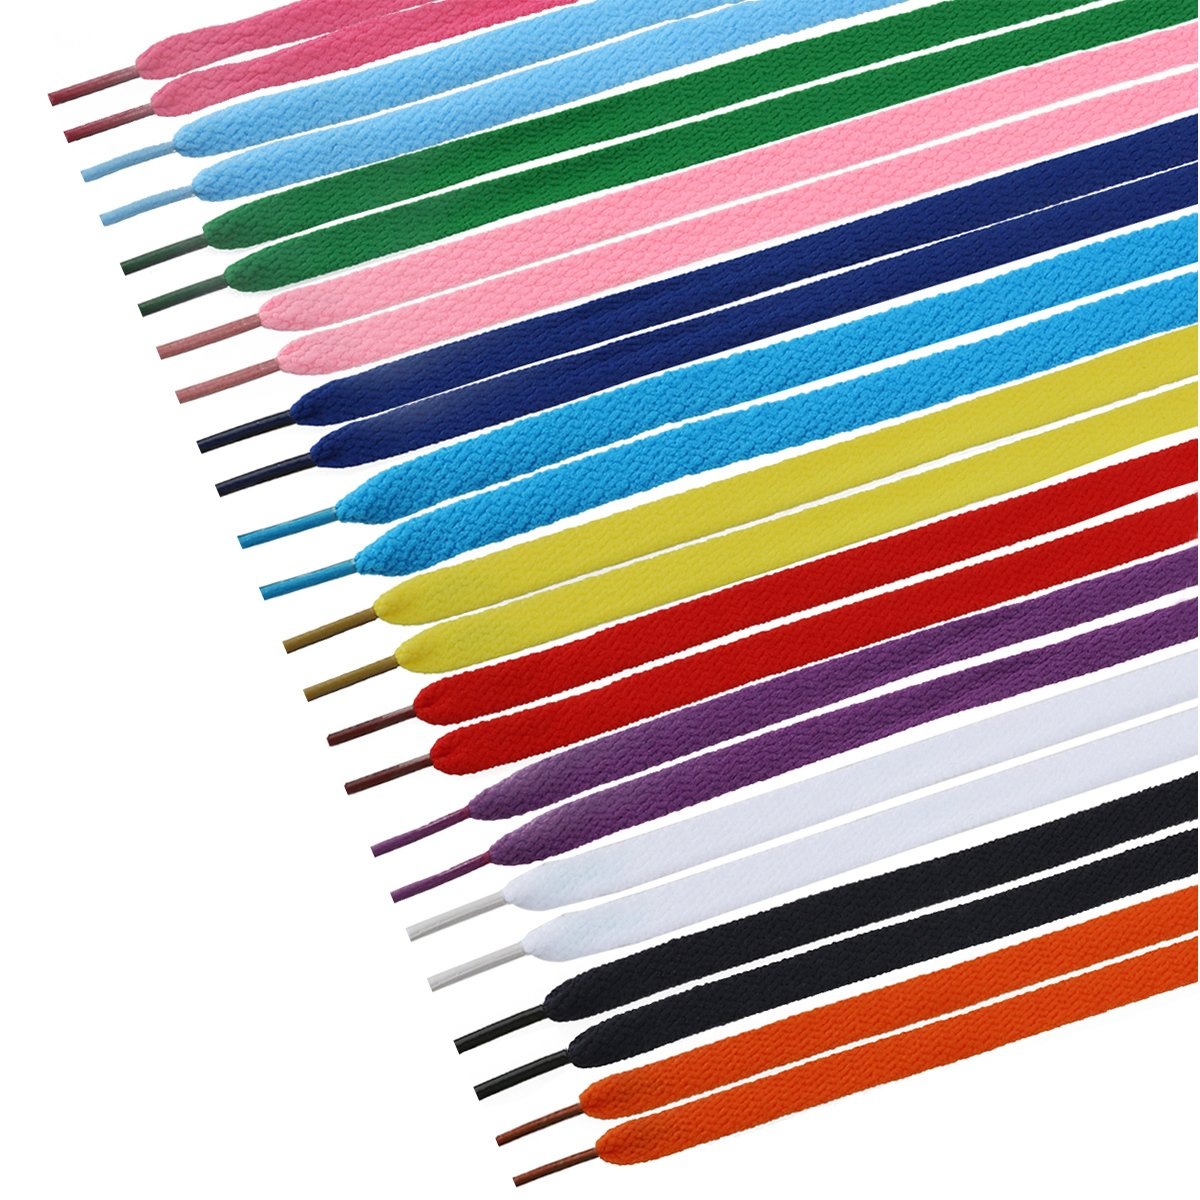 12 Pairs Flat Shoelaces Shoe Laces Strings for Sports Shoes Boots Sneakers Skates (Assorted Colors)